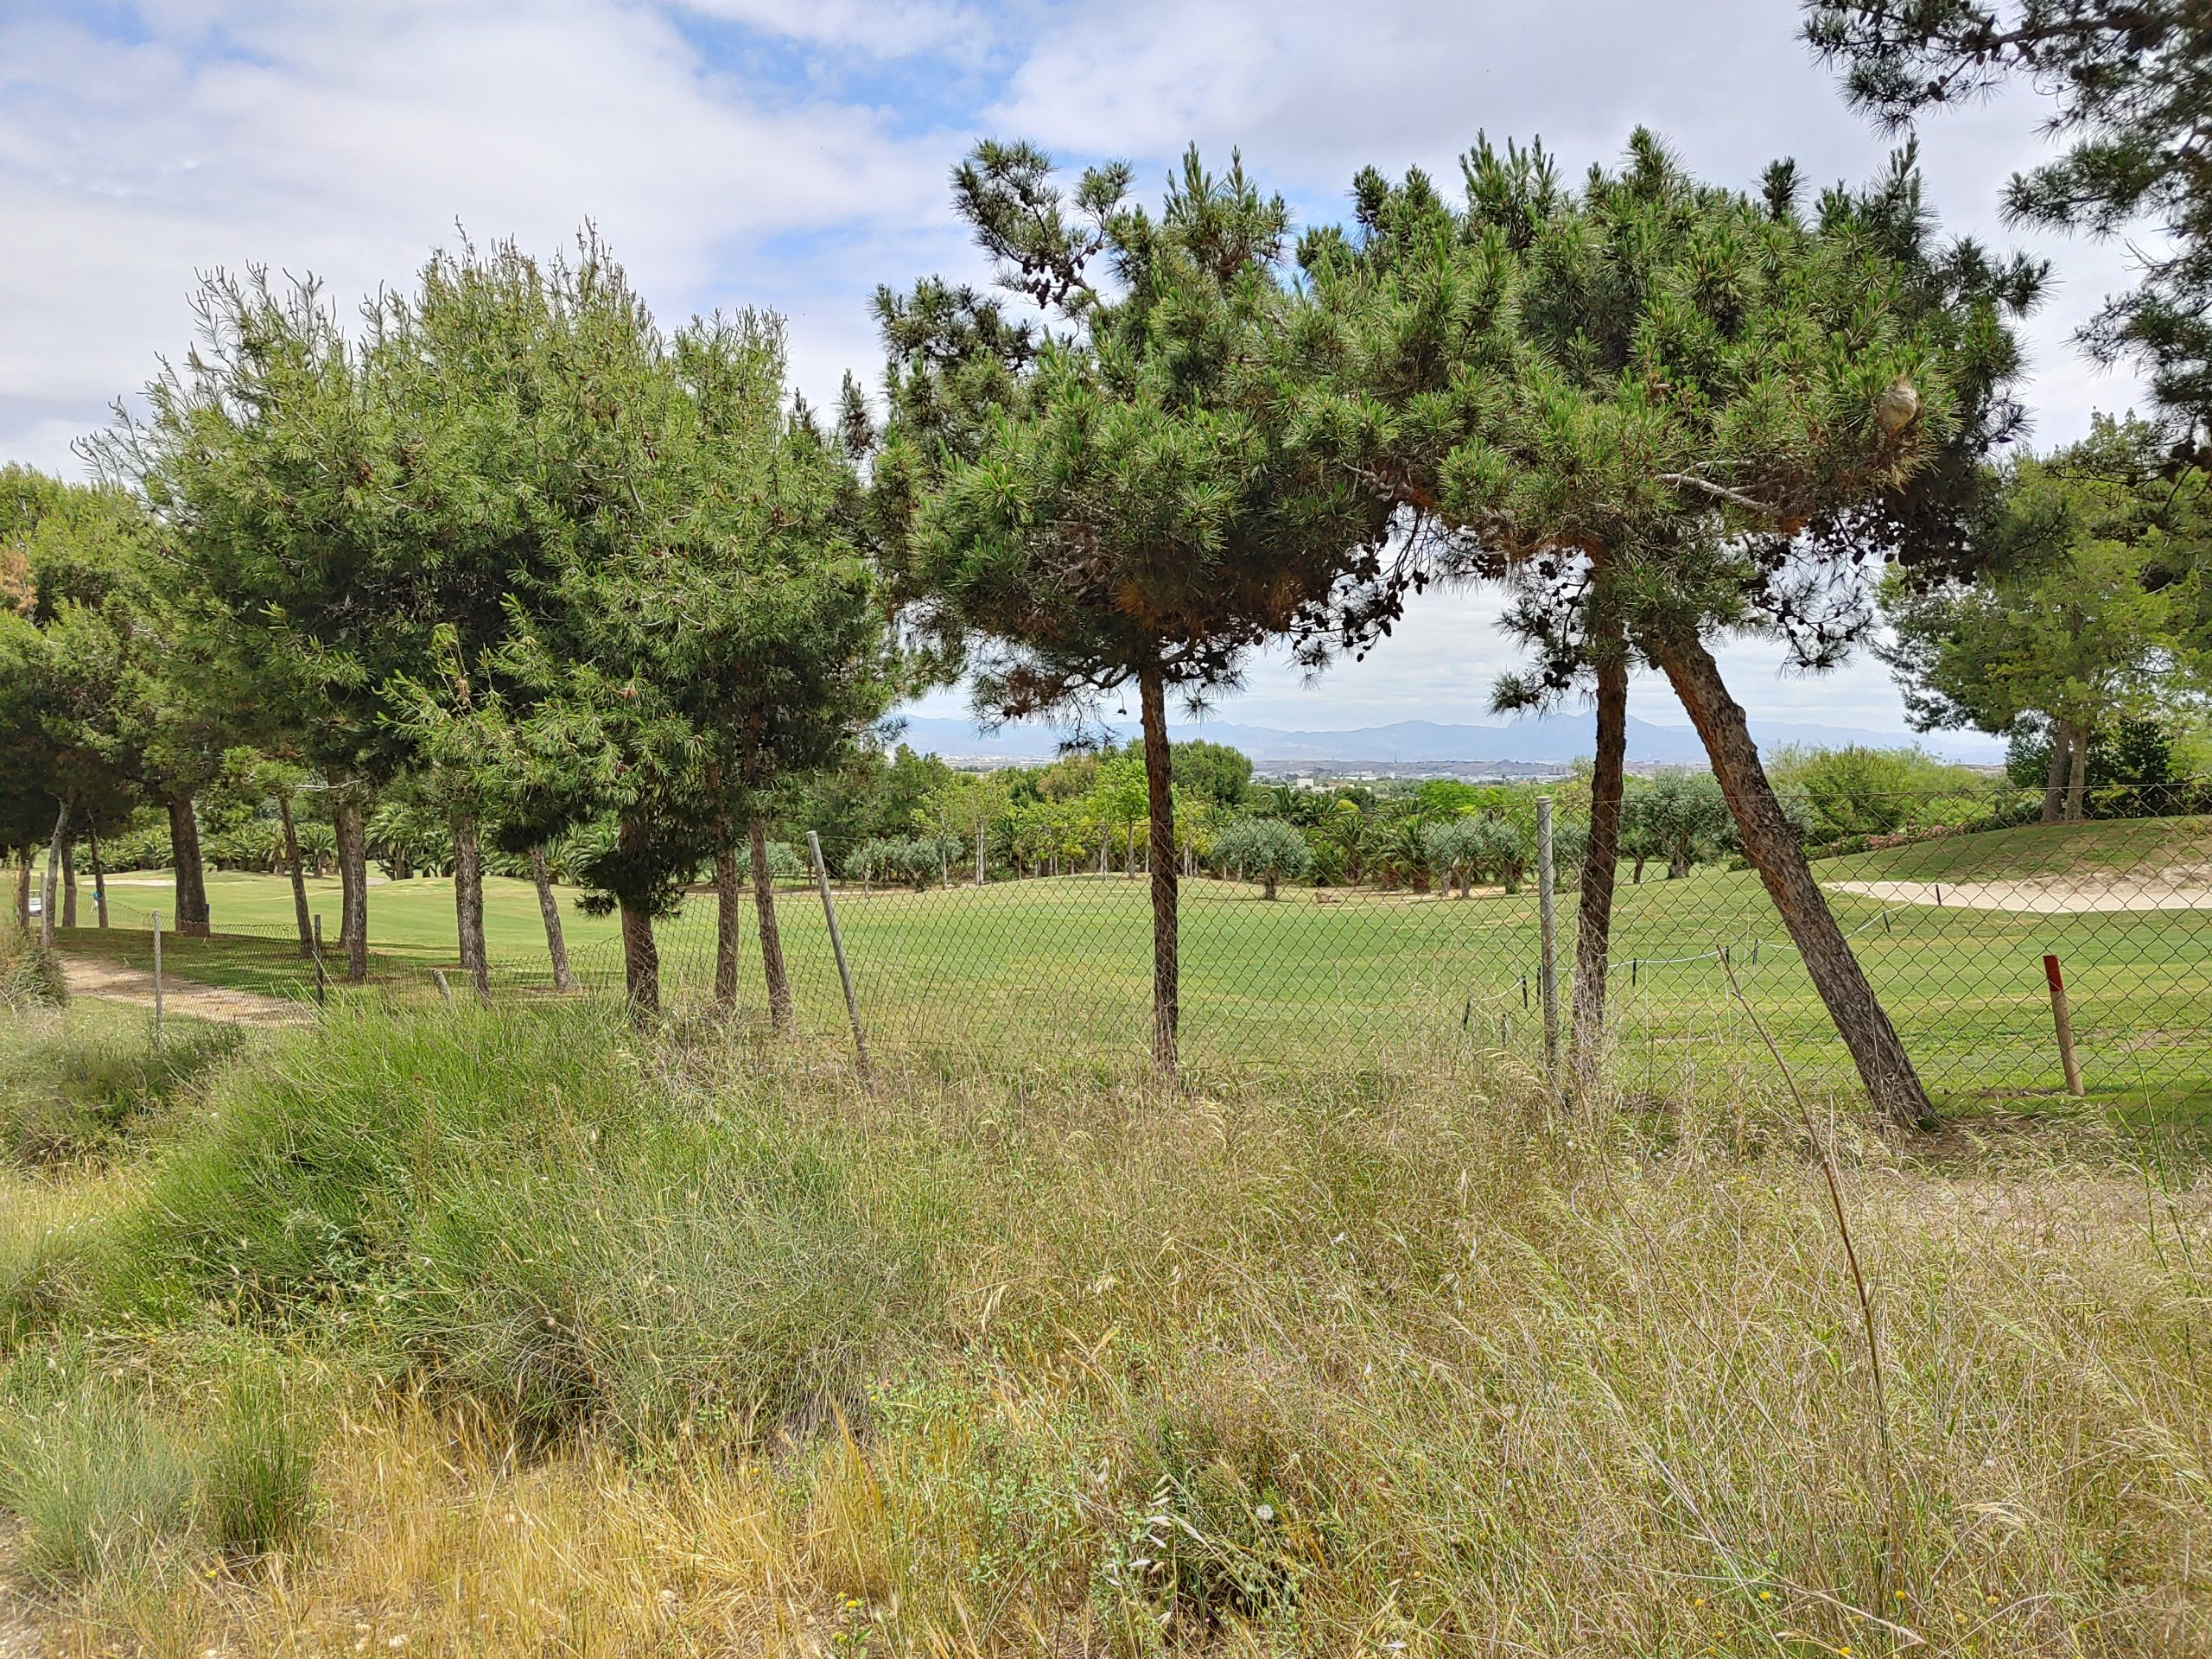 300000 m2 of land for sale adjacent to the 1st and 2nd holes of El Plantio Golf Course Alicante